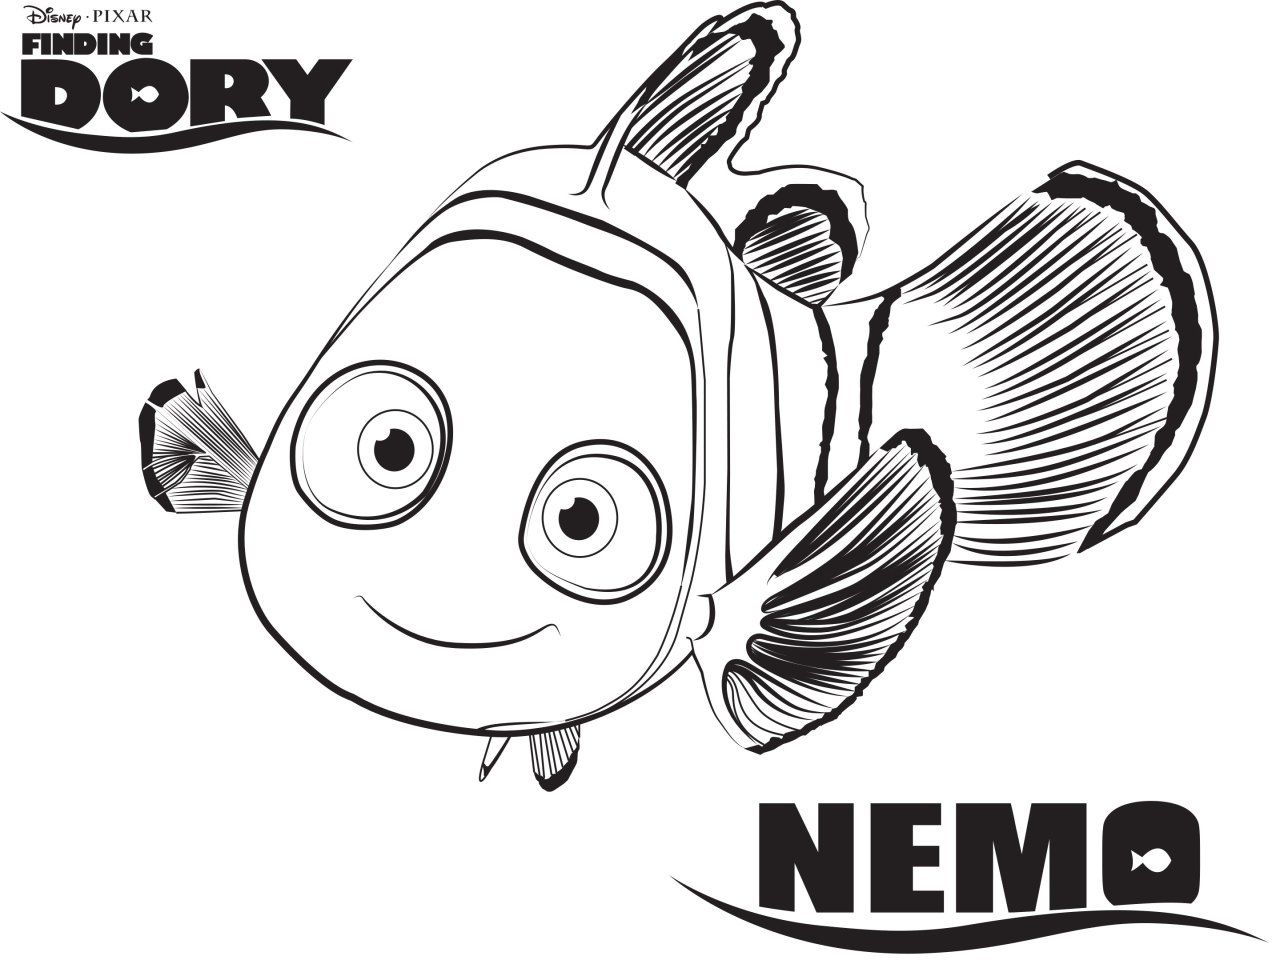 Coloring pages for dory - Disney S Finding Dory Coloring Pages Sheet Free Disney Printable Finding Dory Color Page